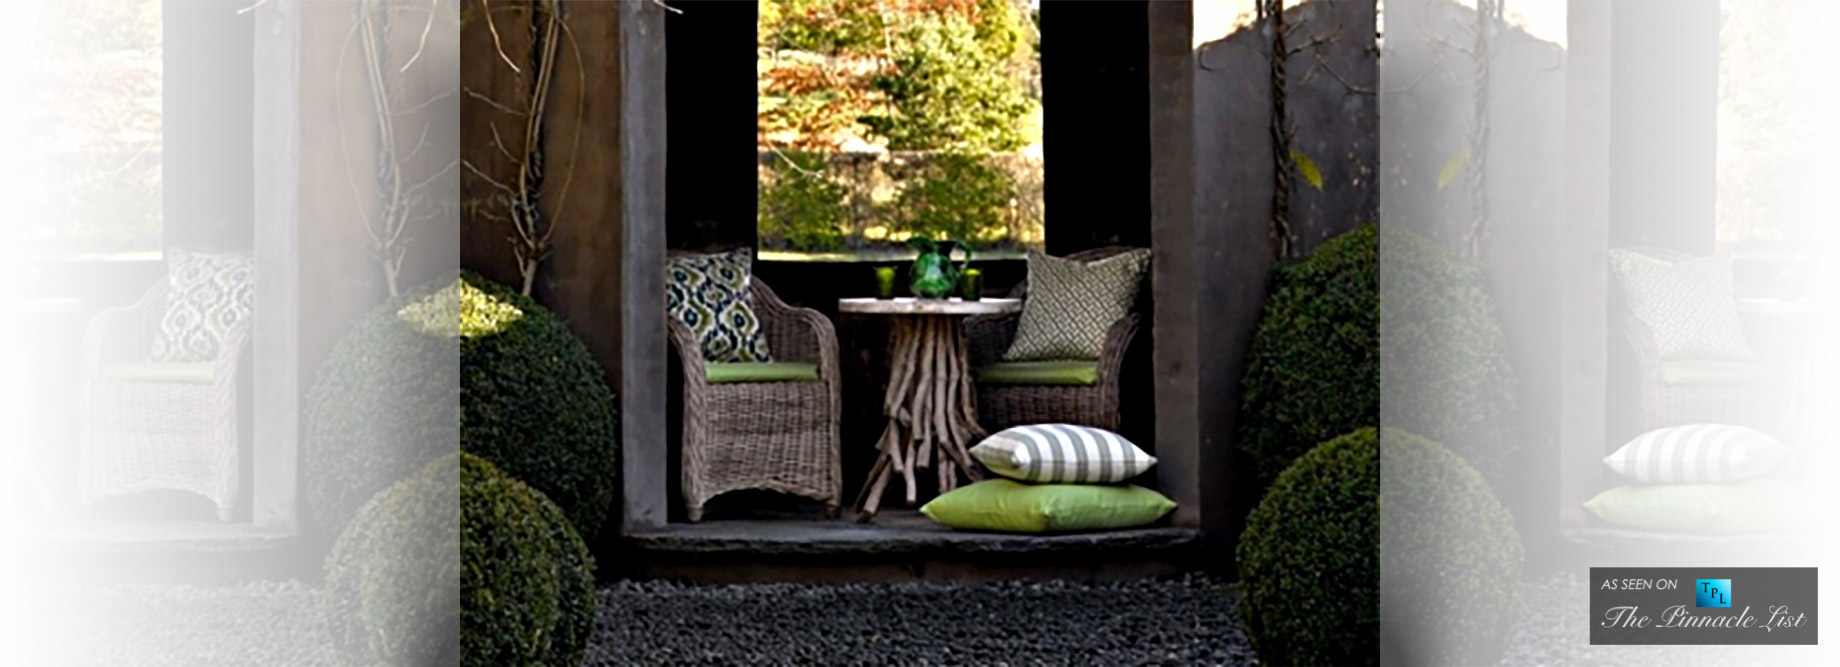 Comfort - Outdoor Luxury Living with Furniture for Australian Winter Entertaining